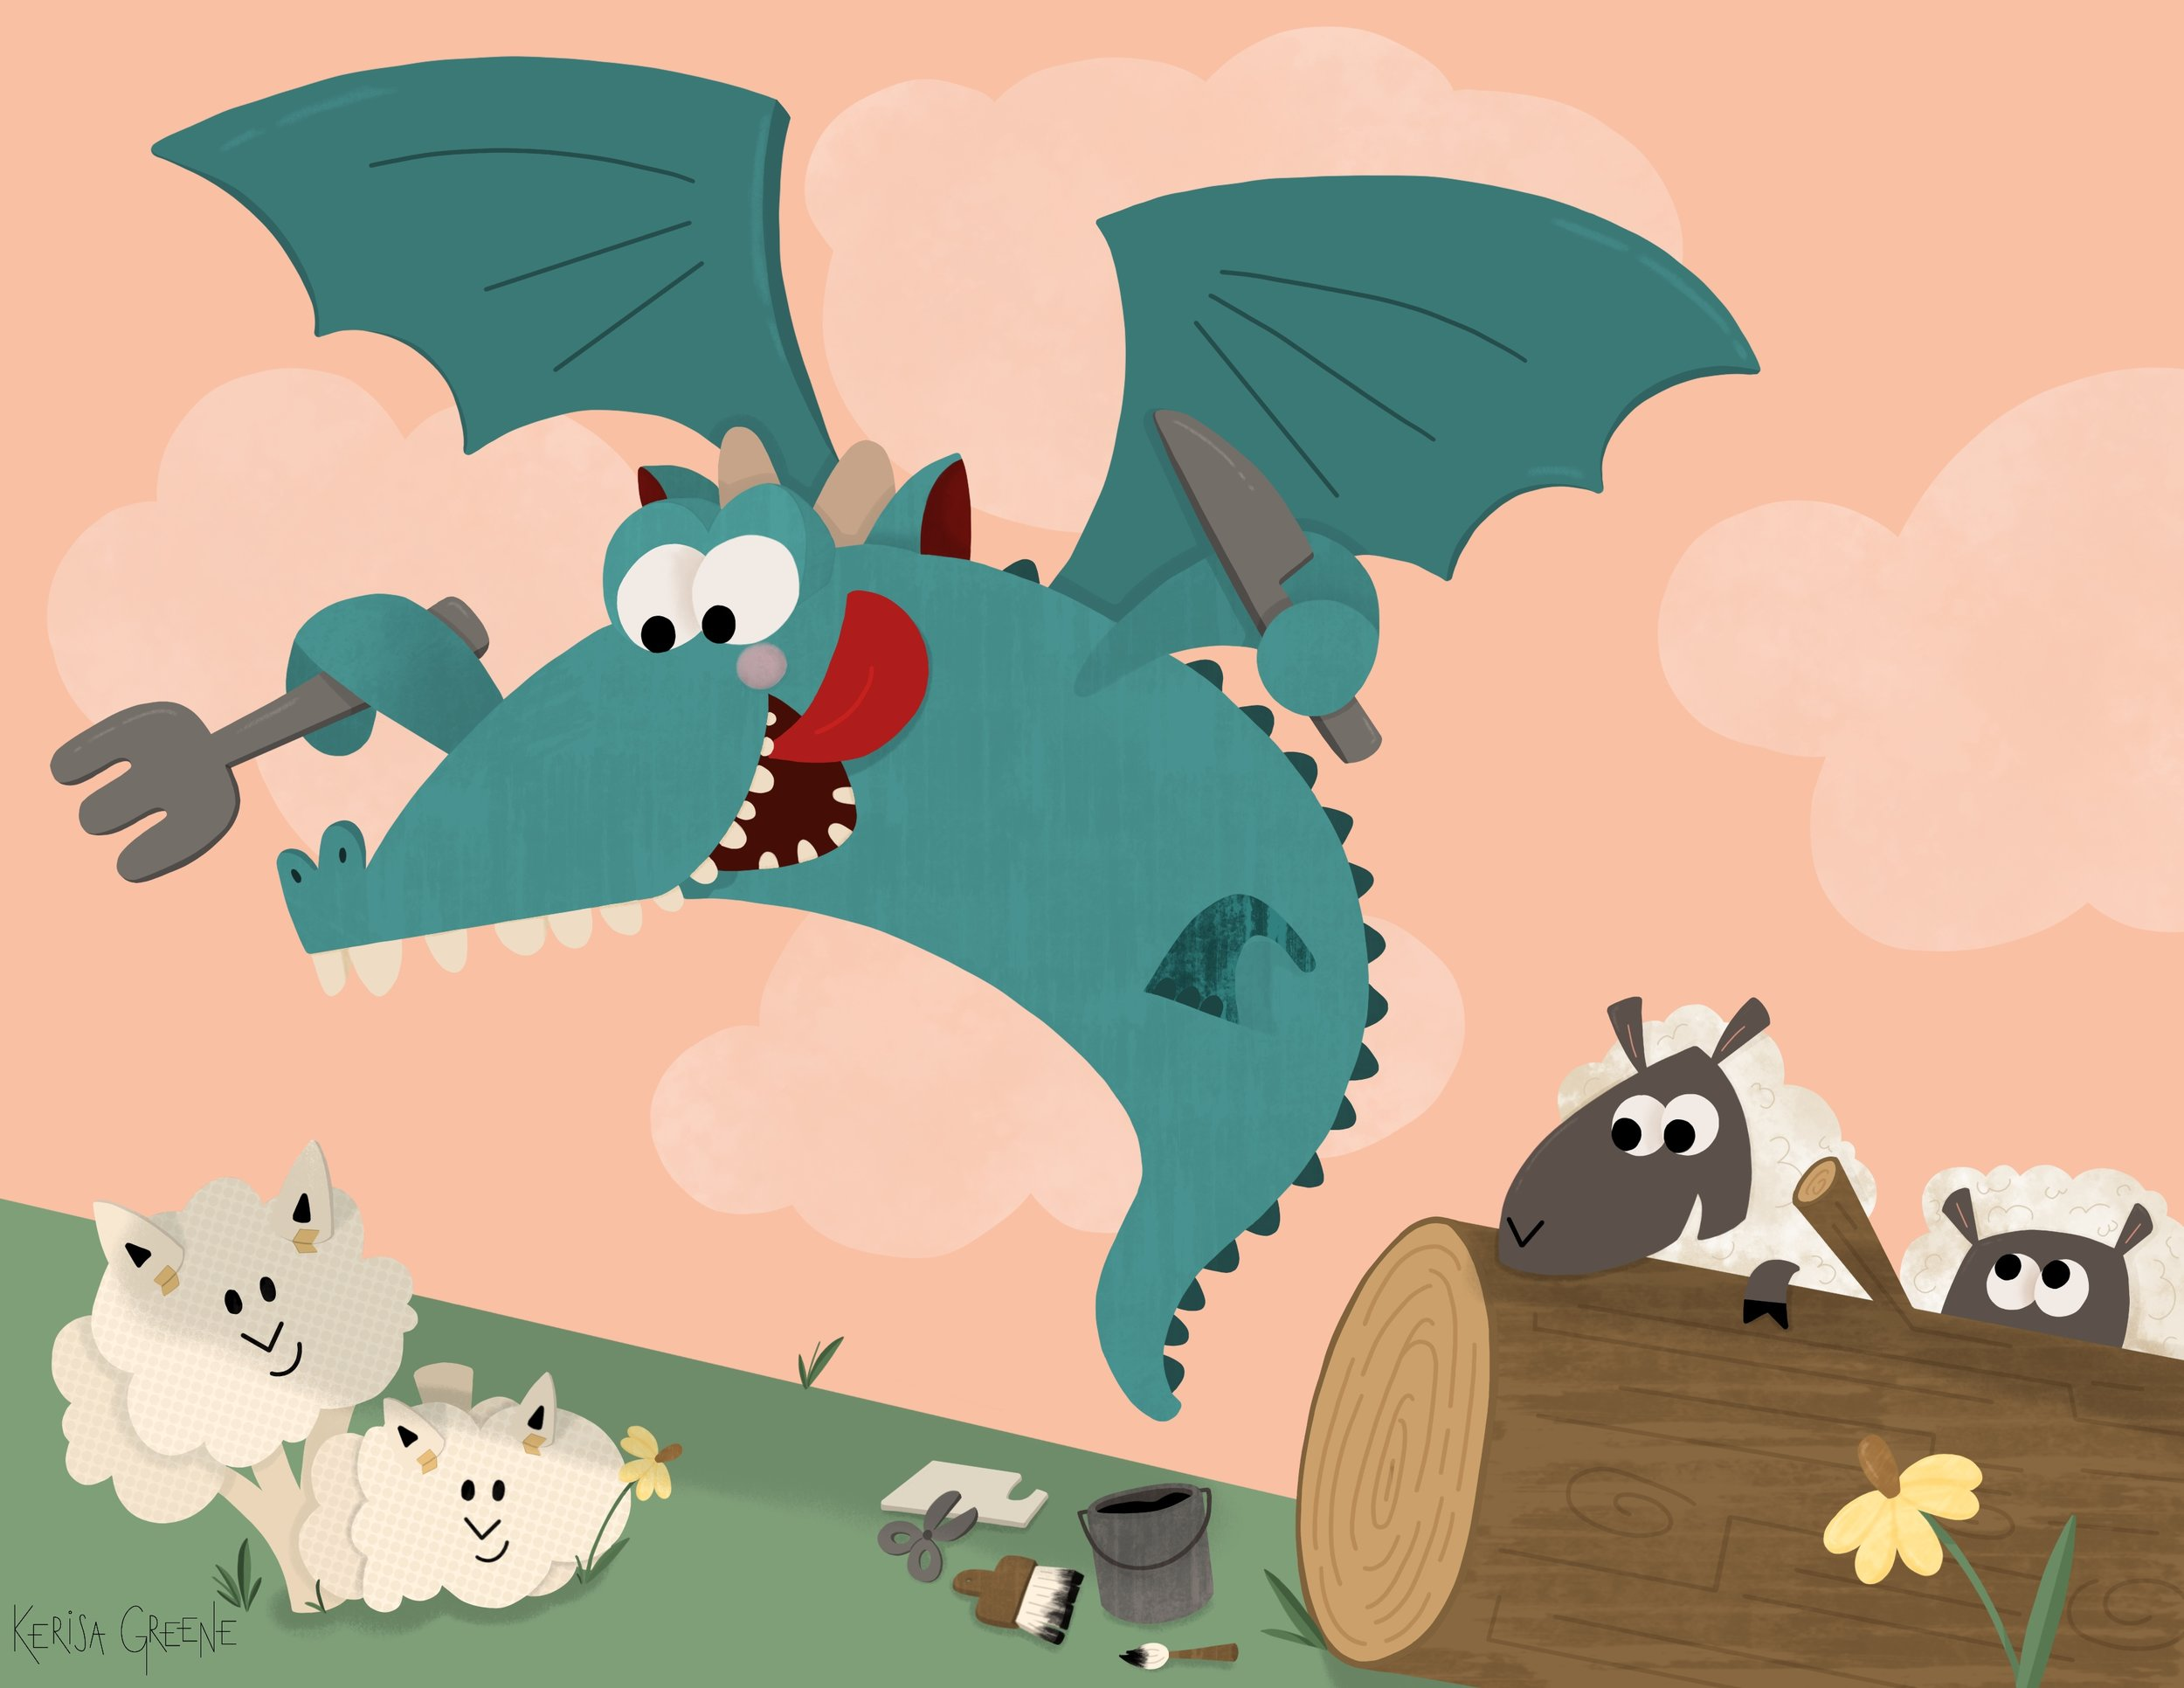 Kerisa Greene Kid Lit Illustration Cheep Creating a Cauliflower Decoy for a Hungry Dragon funny children's book